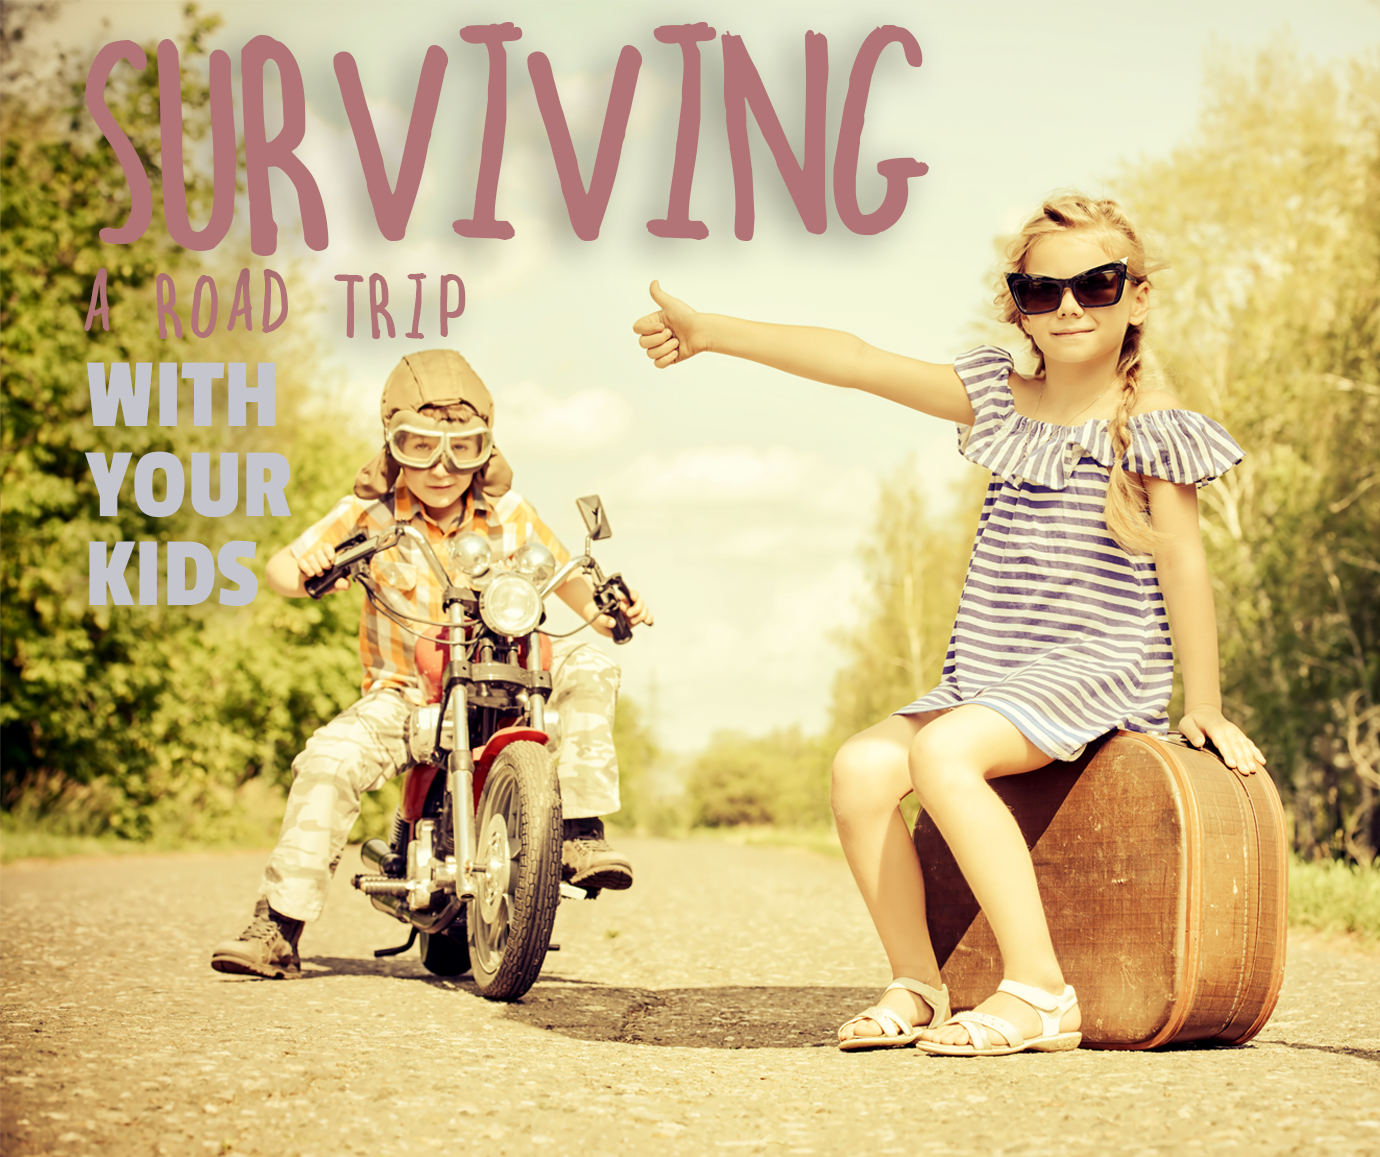 How to Survive a Road Trip With Kids Aged 2-5